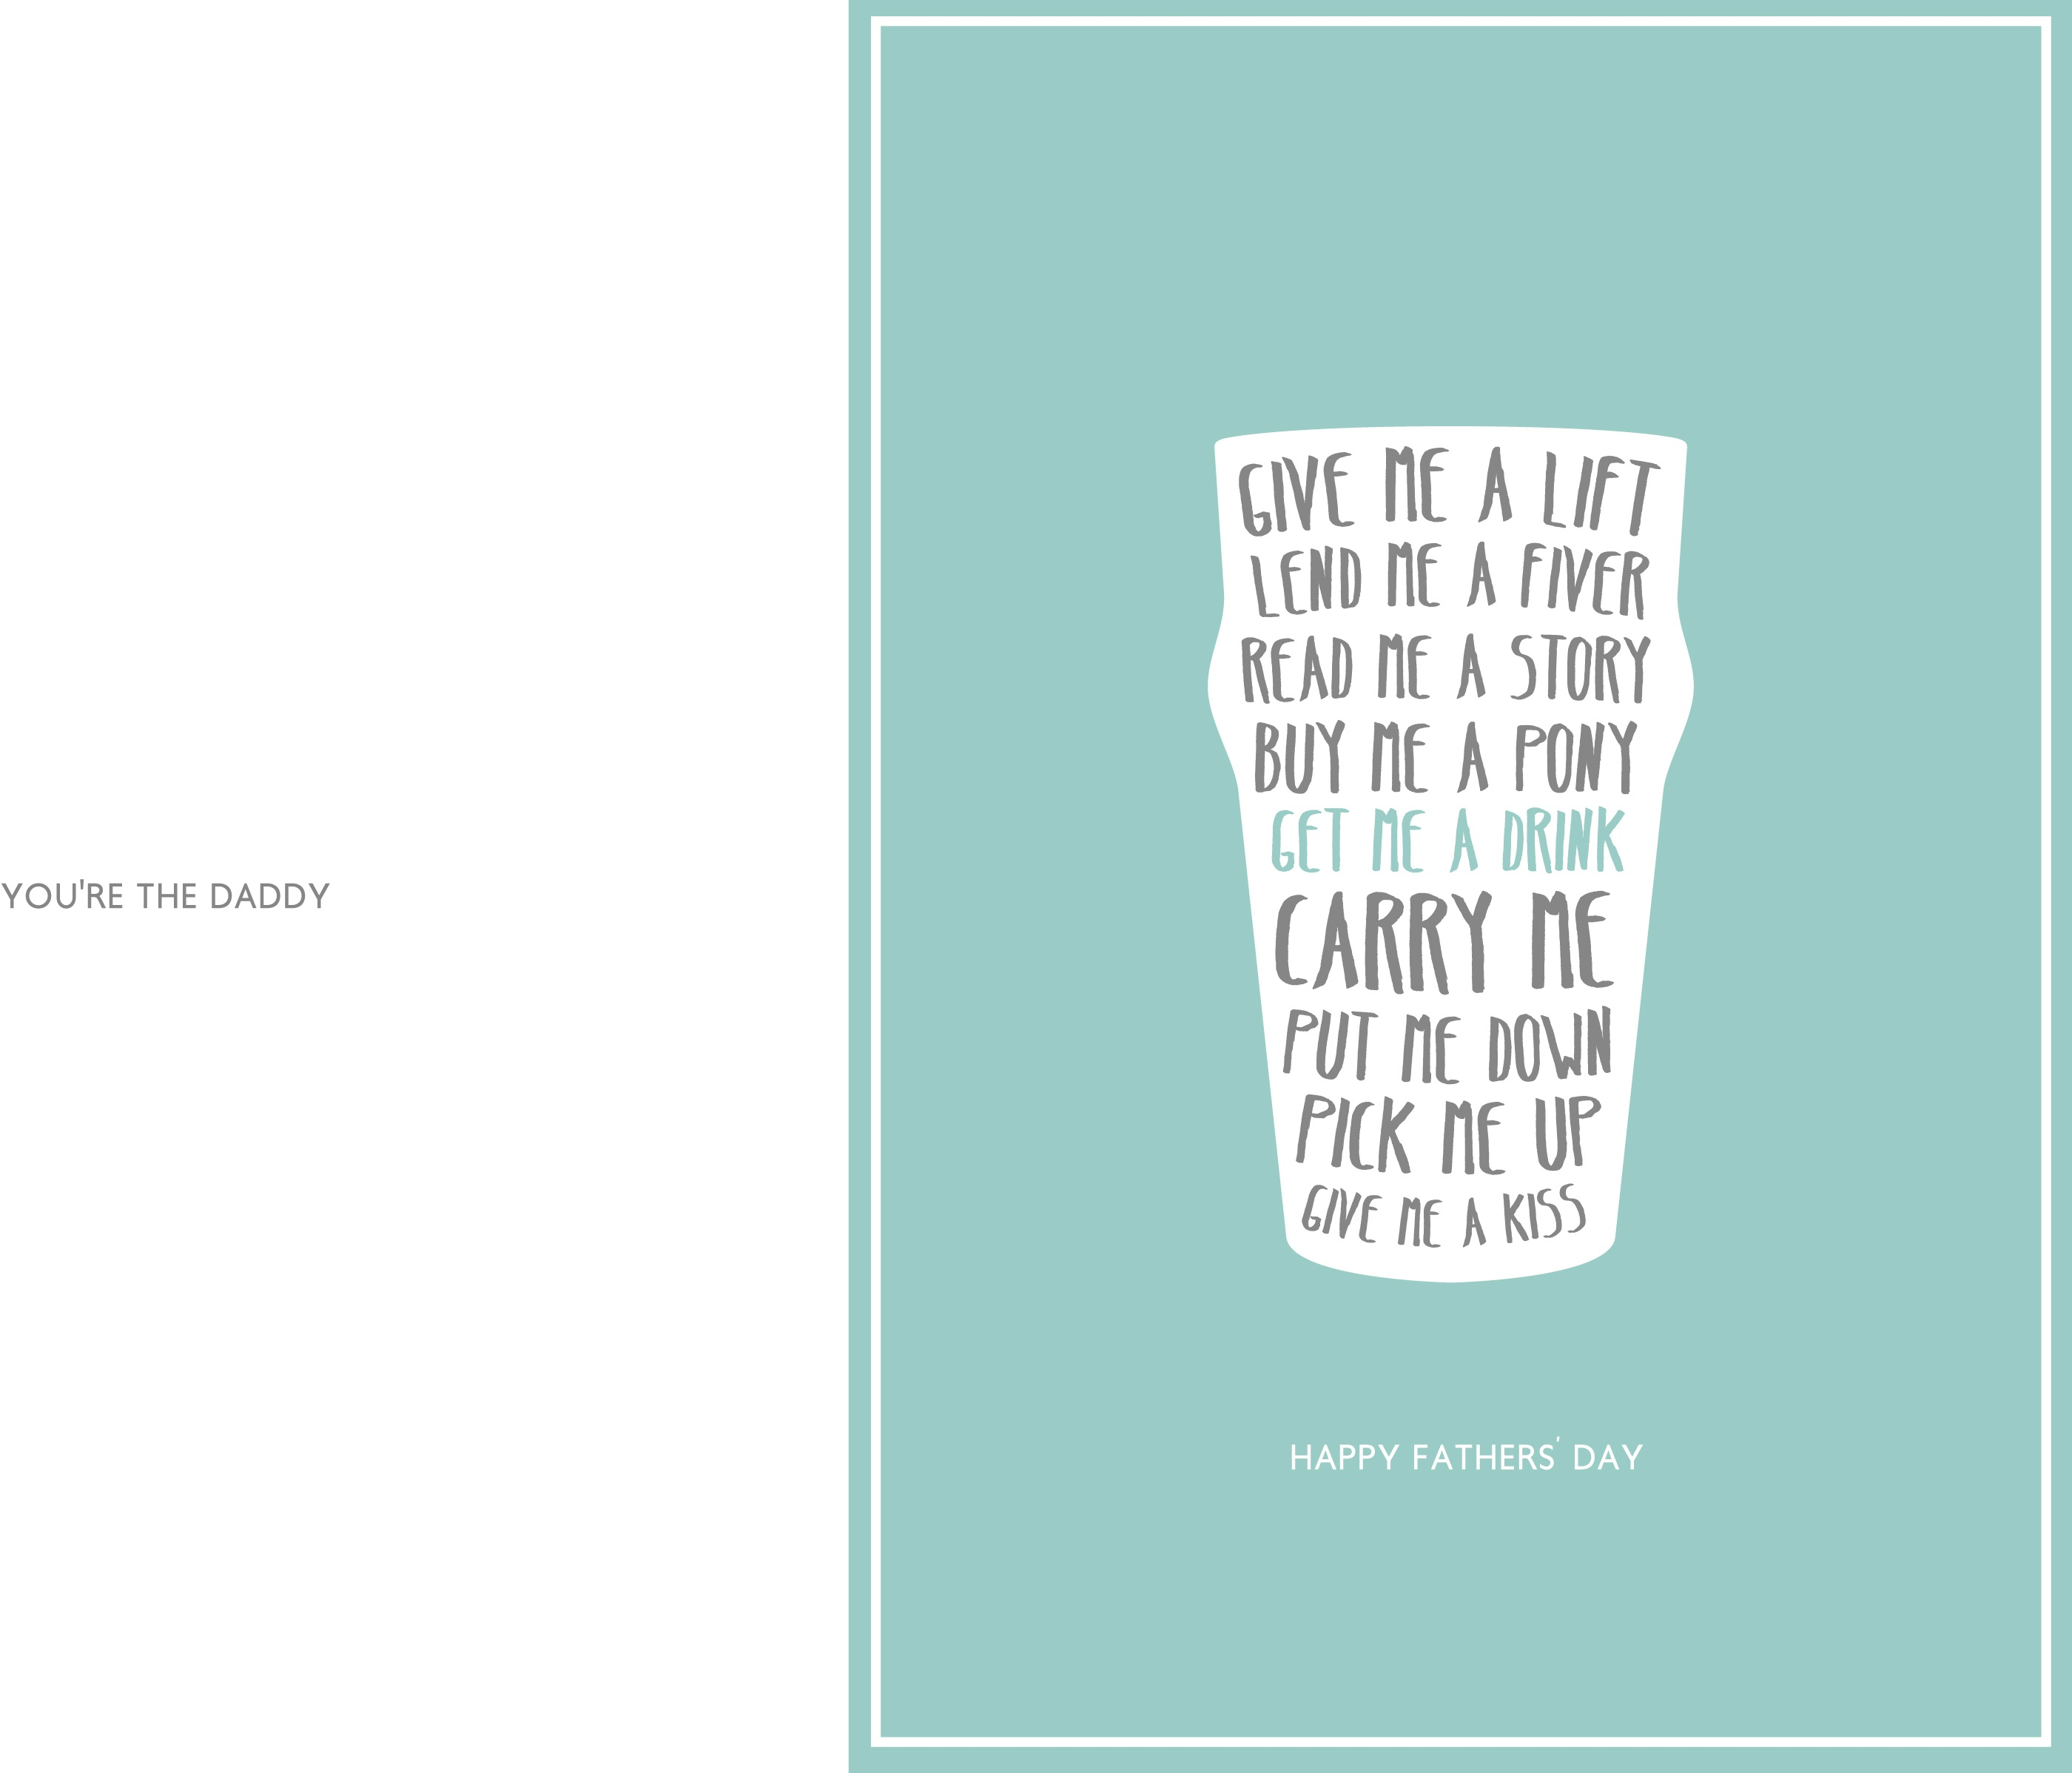 24 Free Printable Father's Day Cards   Kittybabylove - Free Printable Father's Day Card From Wife To Husband